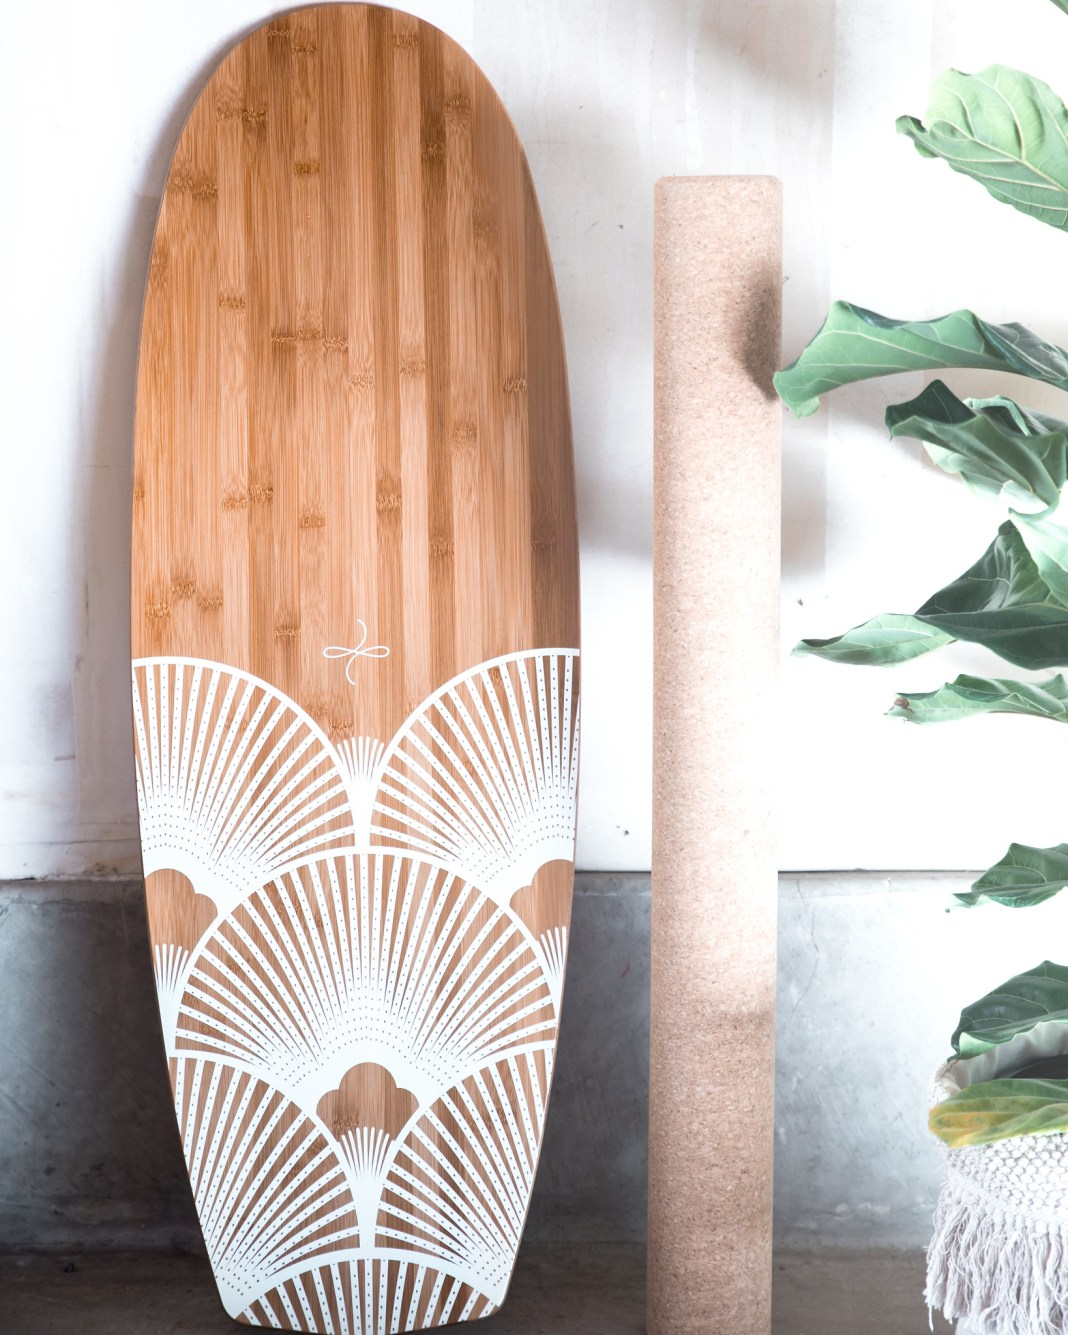 Top Rated of All Balance Boards for Surfers Flo-Blocks Included for Easy//Safe Start-Up Perfect for SUP//Paddle Board//Kite//Longboard Ebb and Flo by GoofBoard Surfing Balance Board